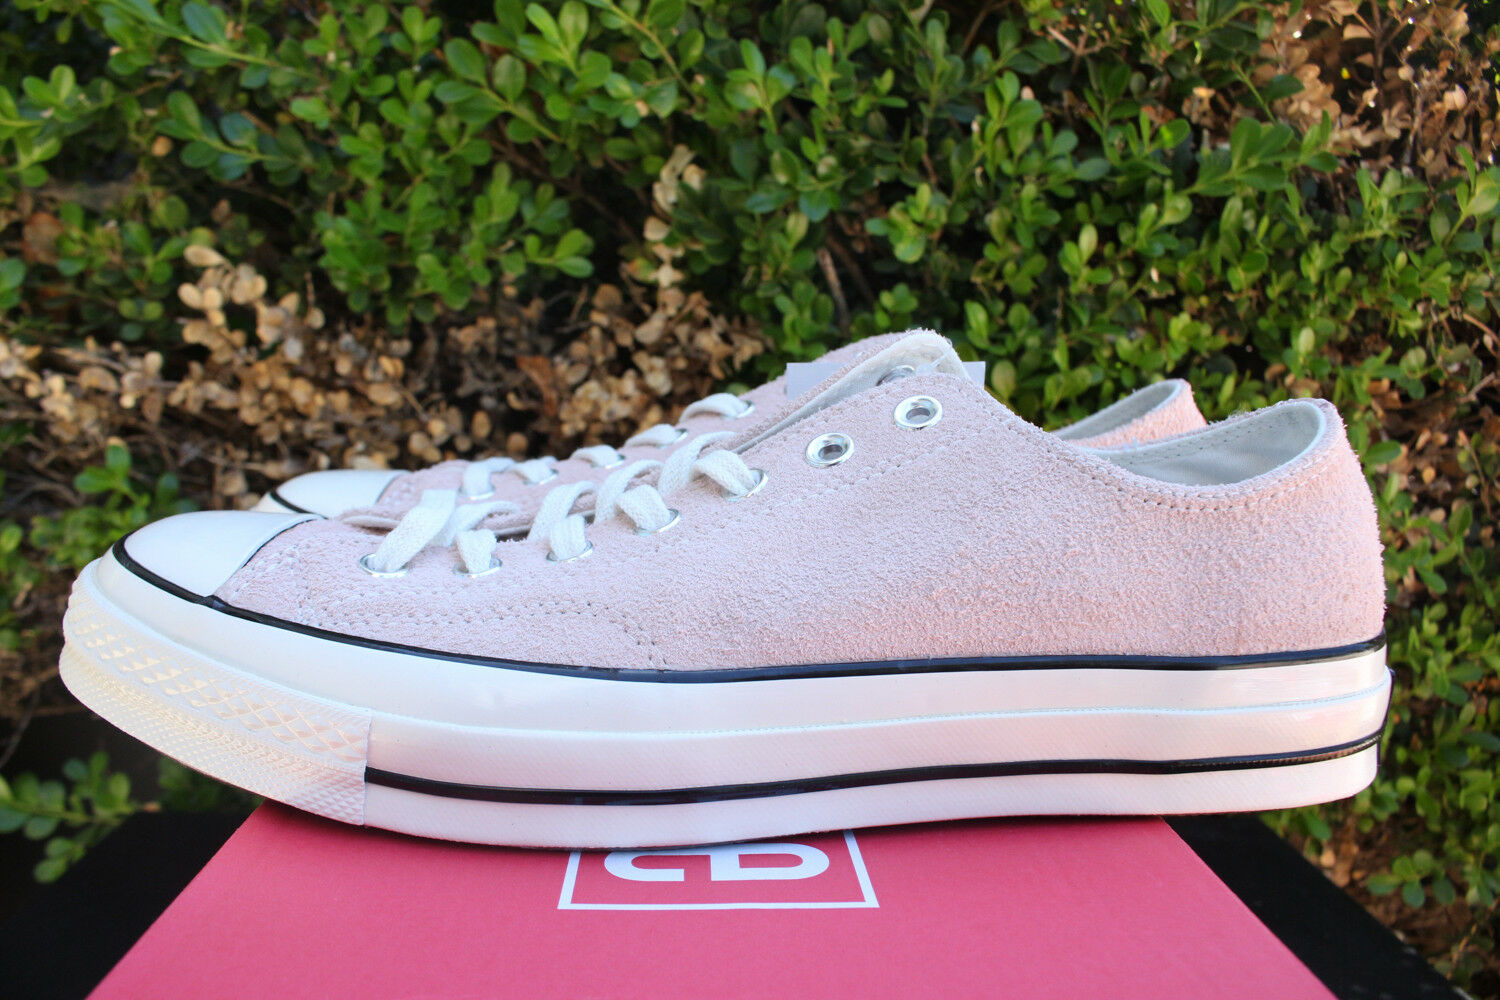 Converse Chuck Taylor All All All Star 70 OX SZ 8.5 TRAMONTO ROSA Egret CT 1970 157587 C c9e557